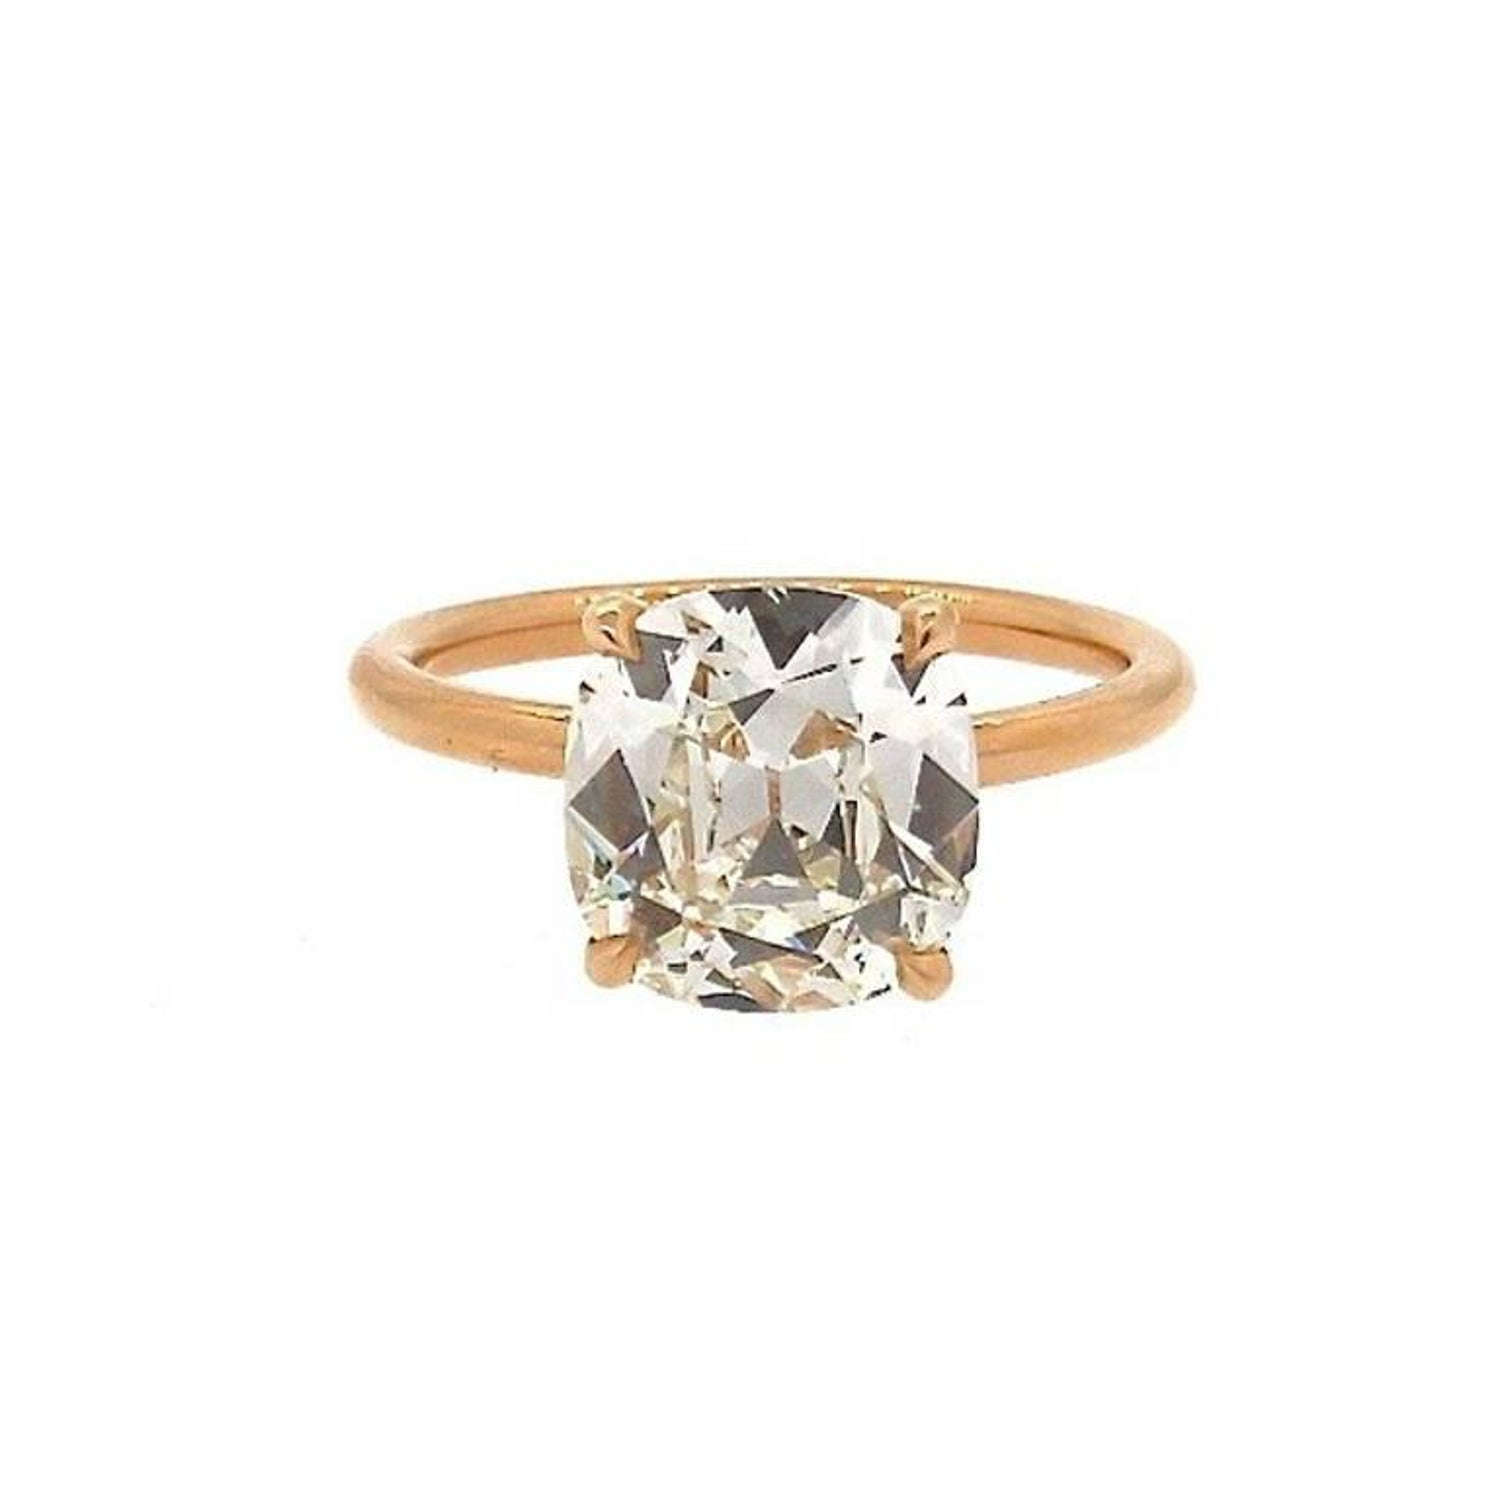 Exquisite 5 25 Carat GIA Certified Antique Cushion Diamond Ring For